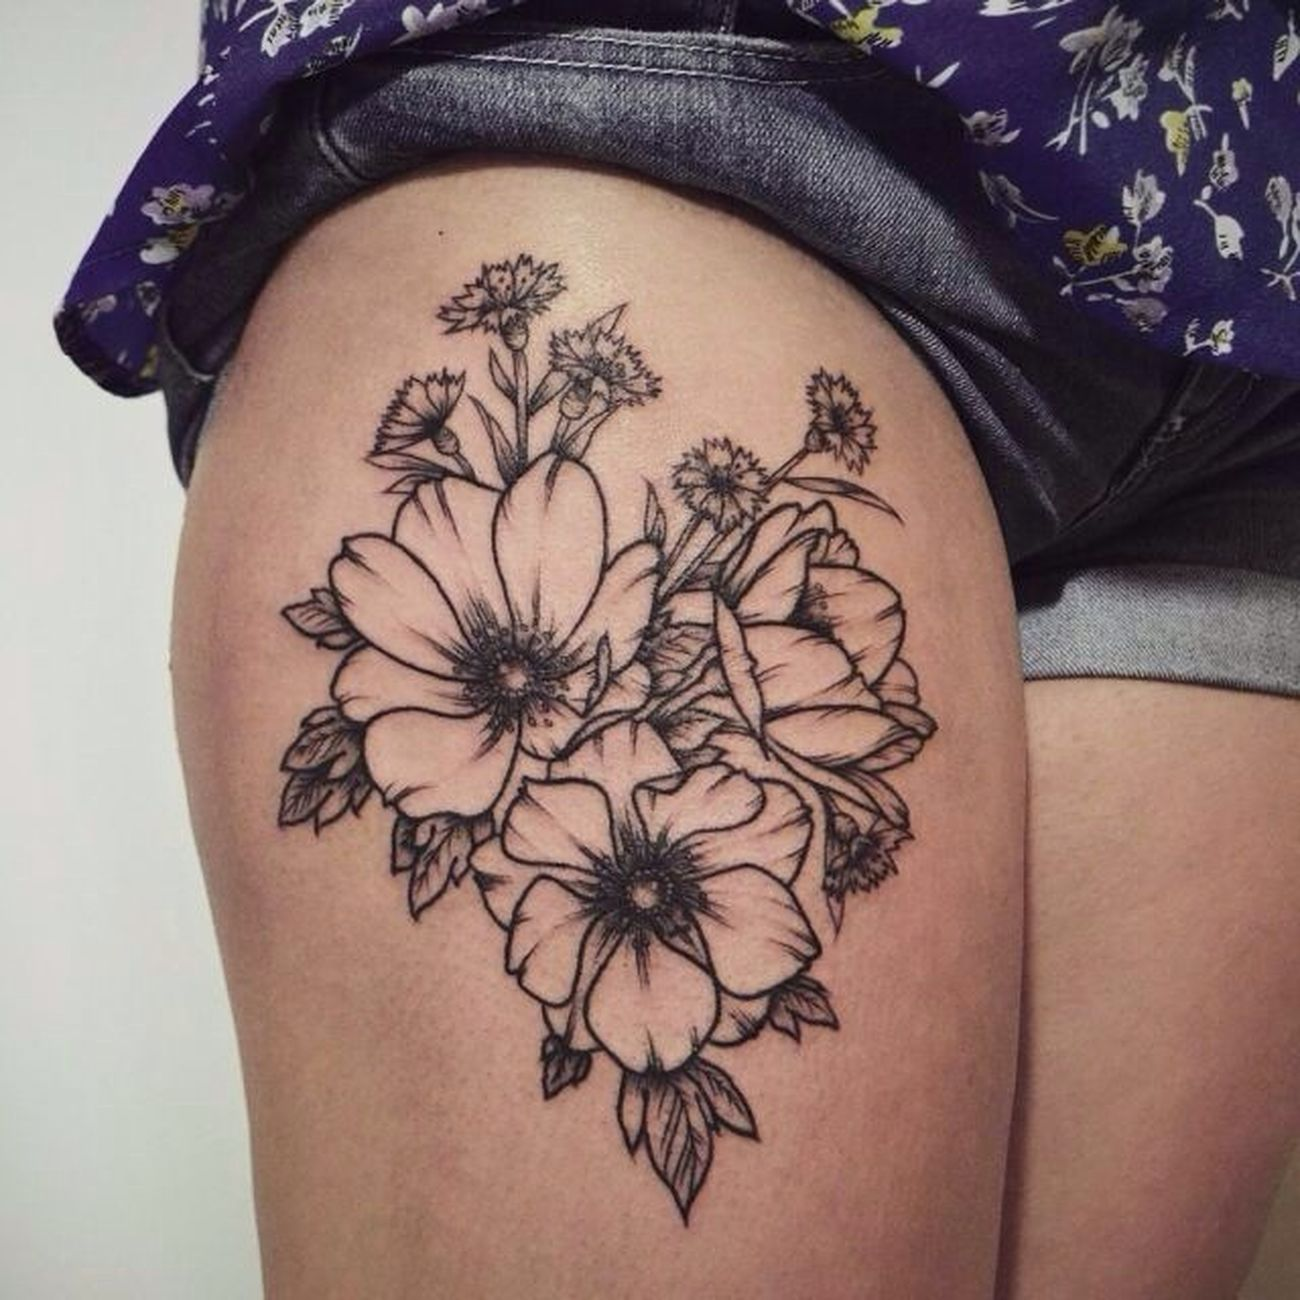 Tattoo Inked Blossom Leg Tattoo